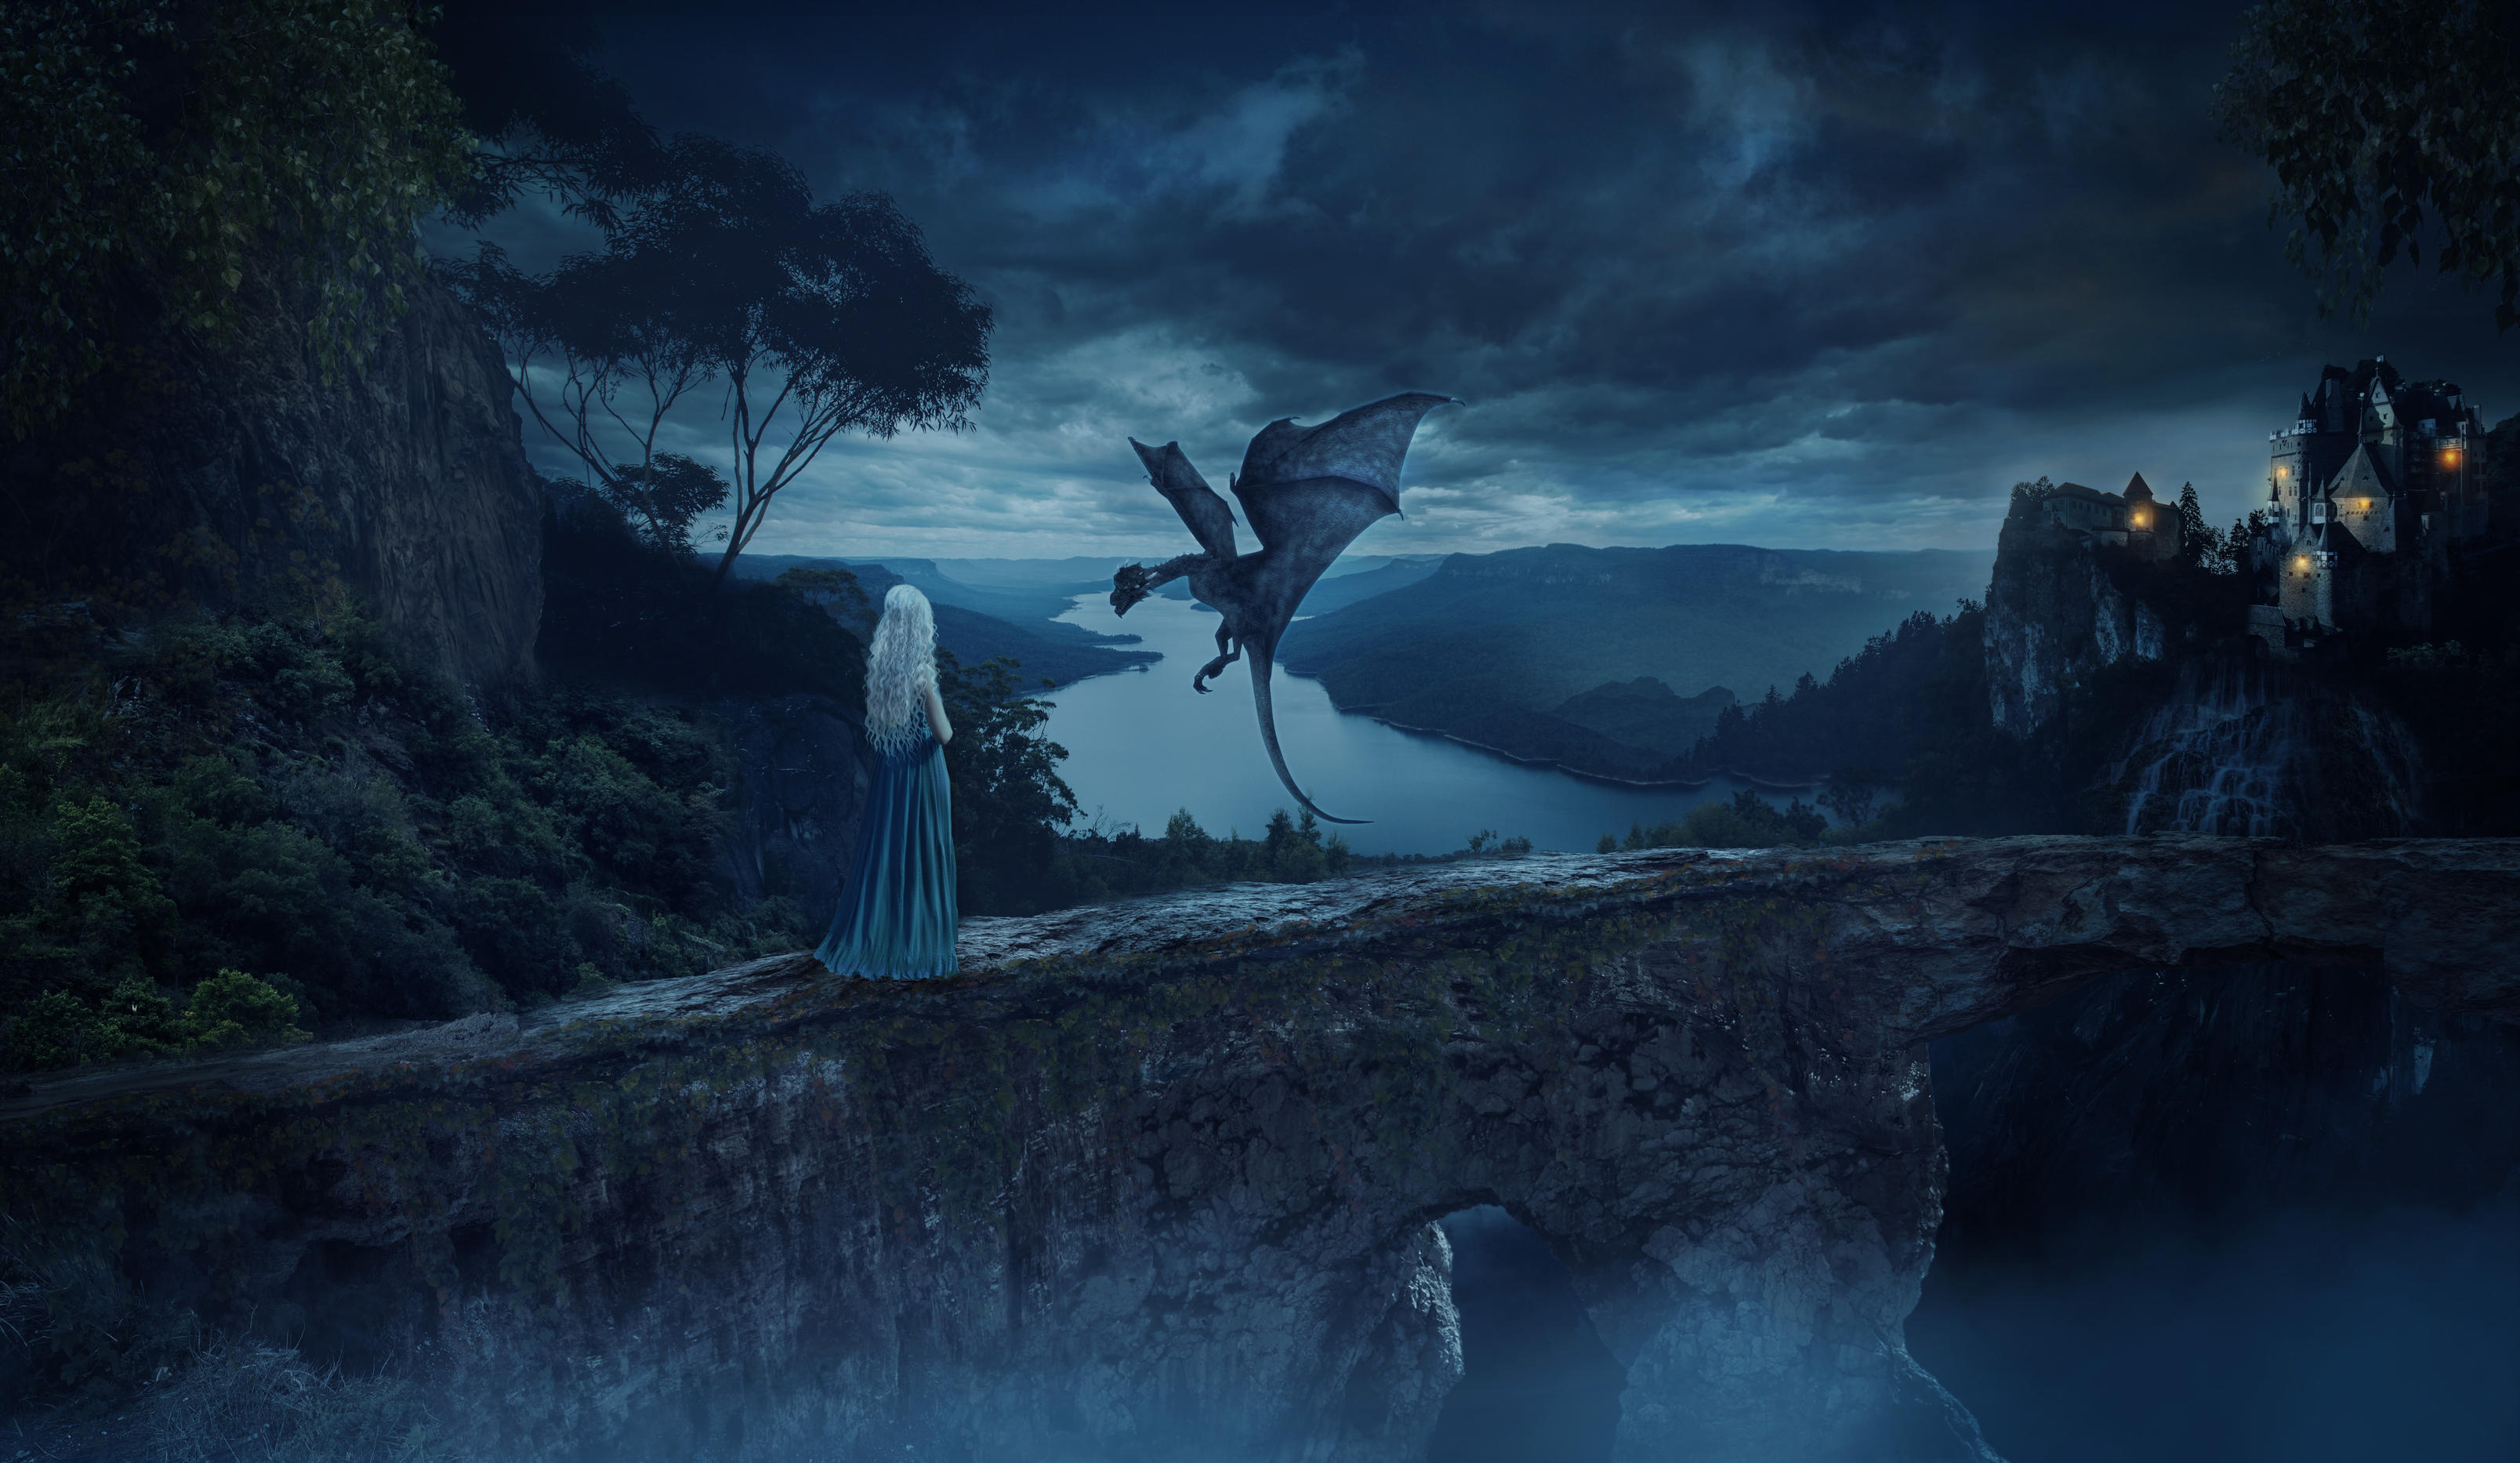 Dragons Mother Game Of Thrones Hd Tv Shows 4k Wallpapers